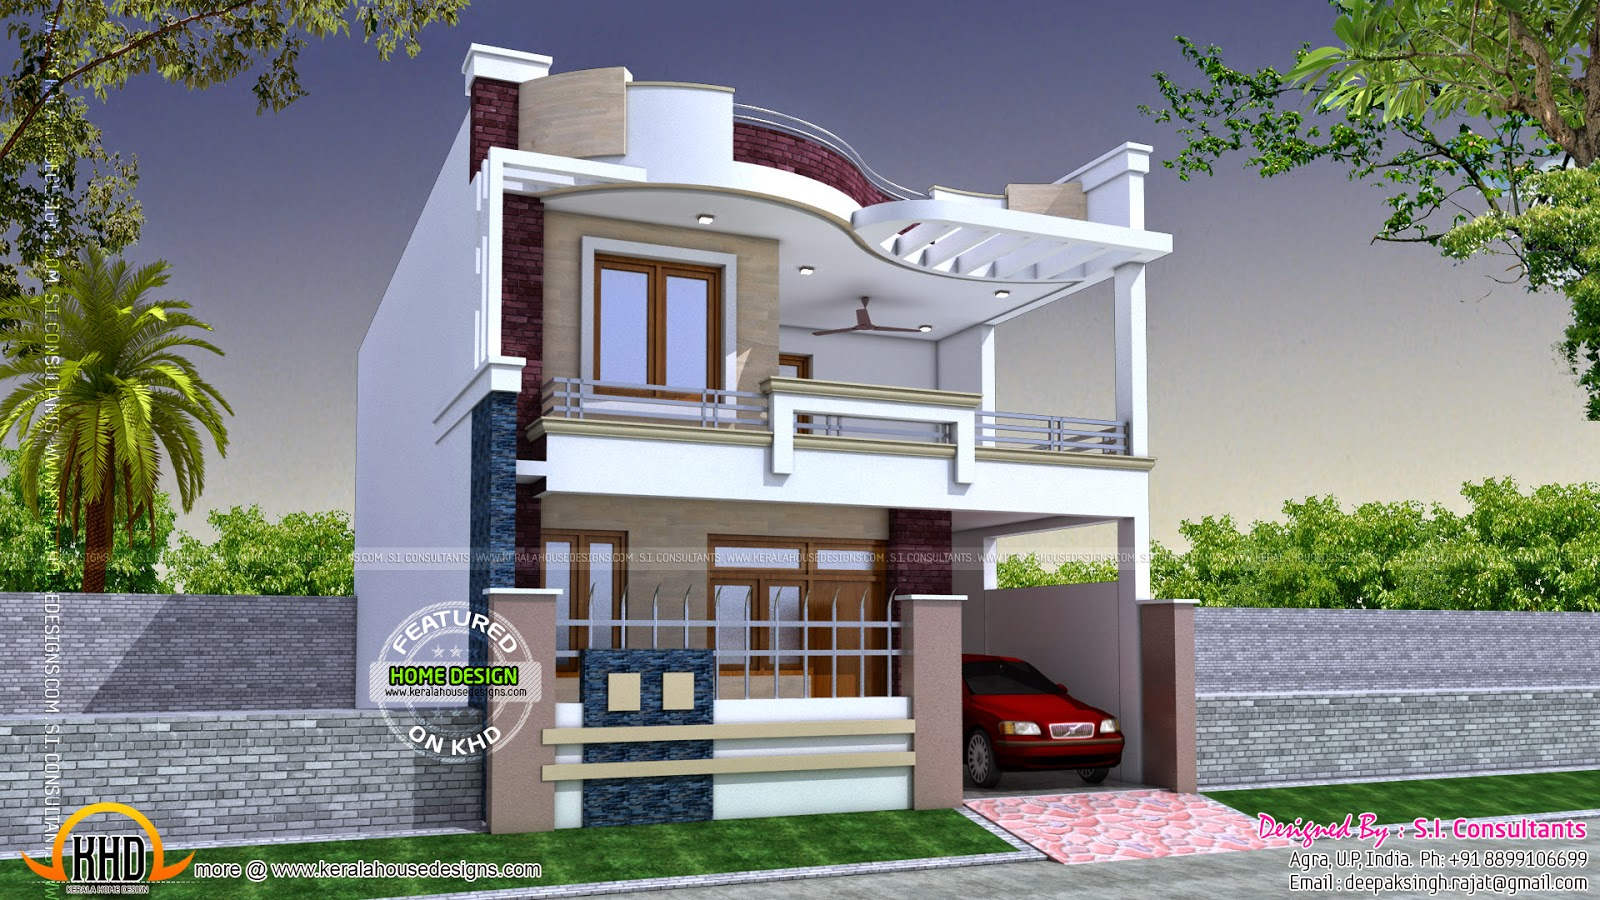 Modern indian home design kerala home design and floor plans for Contemporary indian house elevations